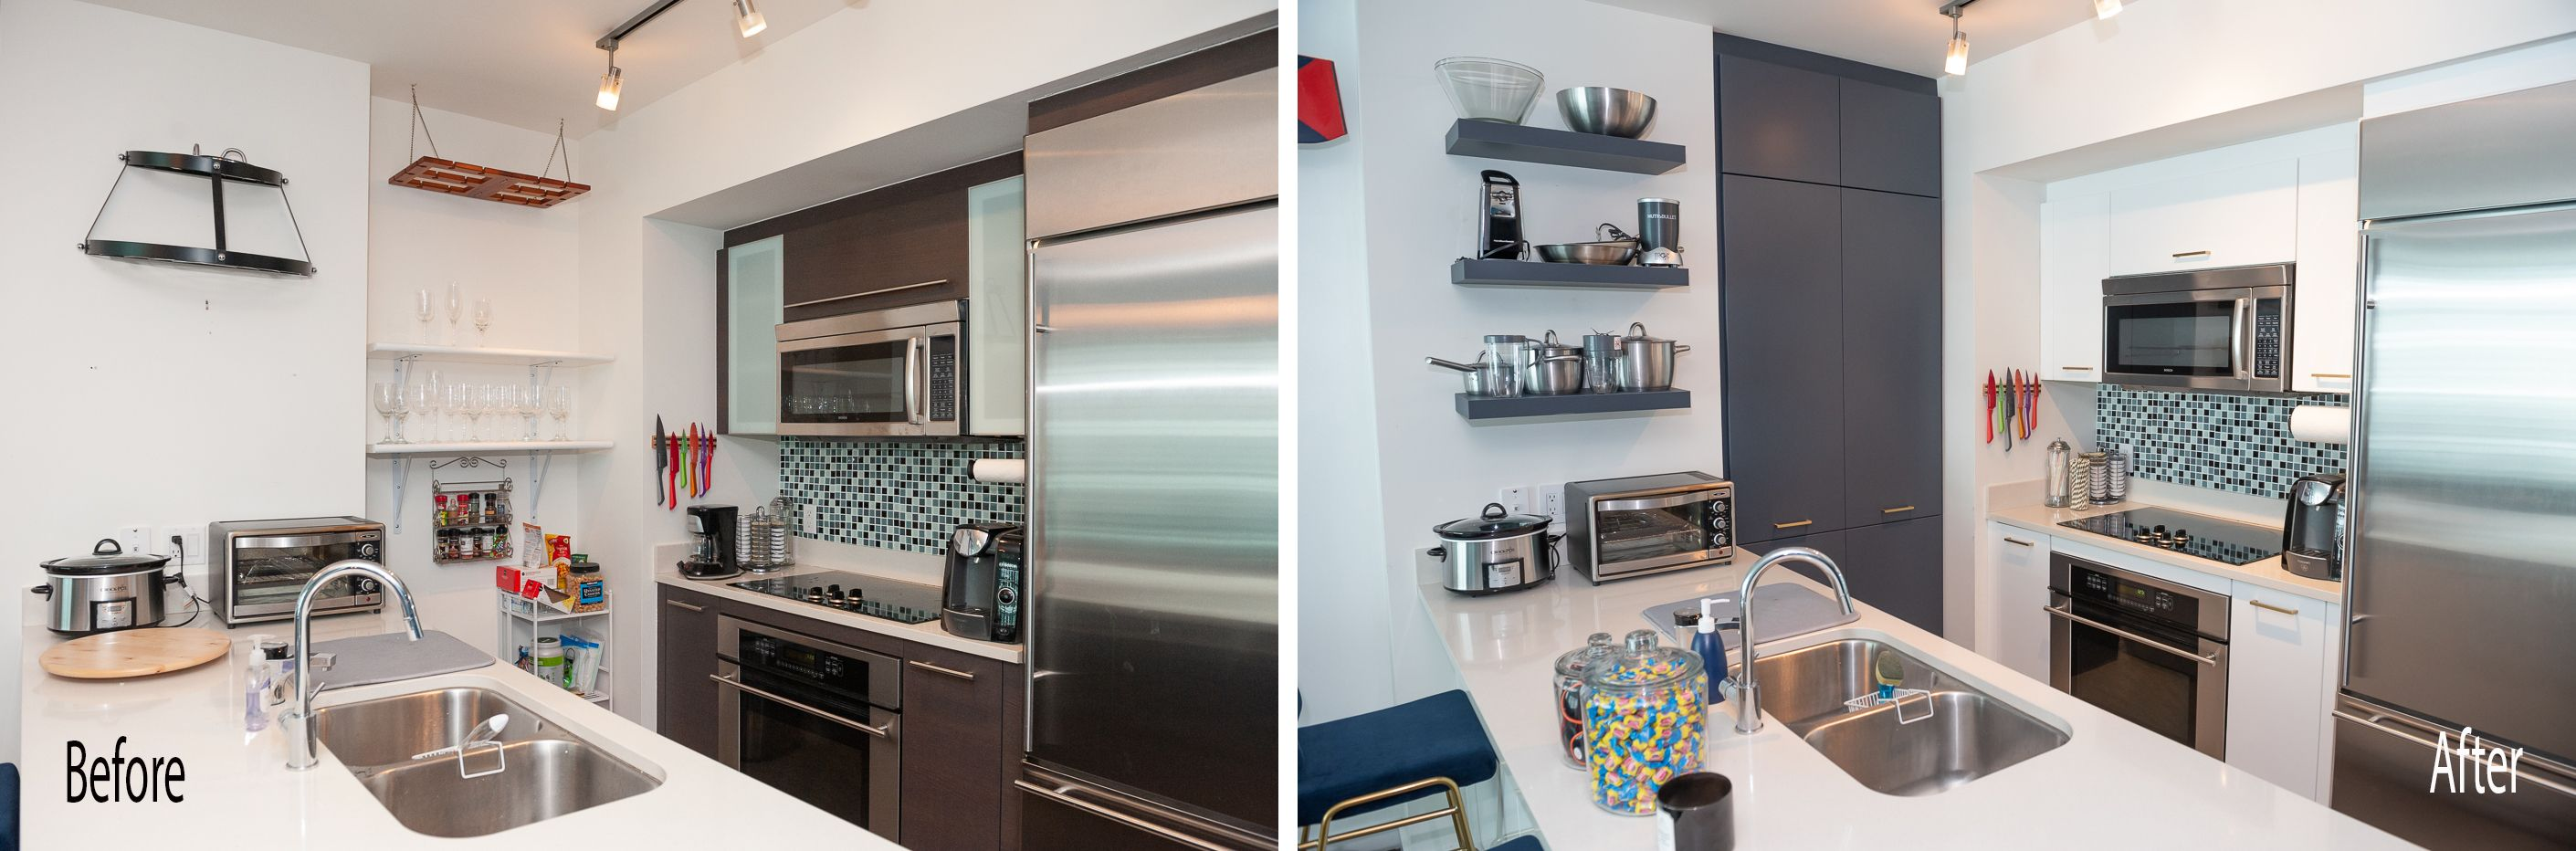 Modern Kitchen Remodel Done In White Gloss And Midnight Blue Modern Kitchen Remodel Kitchen Remodel Home Kitchens